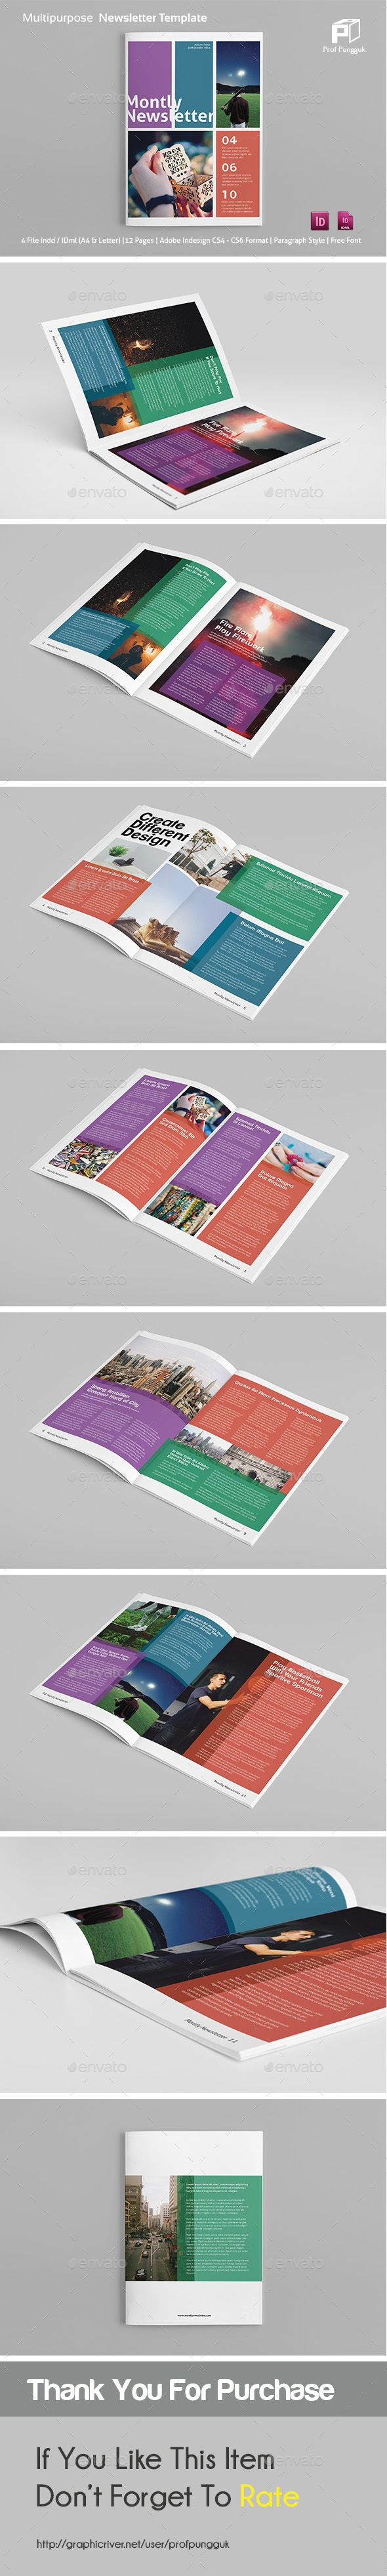 47 best newsletter template images on pinterest newsletter modern colorful newsletter vol2 newsletter ideasnewsletter templatesnewsletter designprint spiritdancerdesigns Choice Image